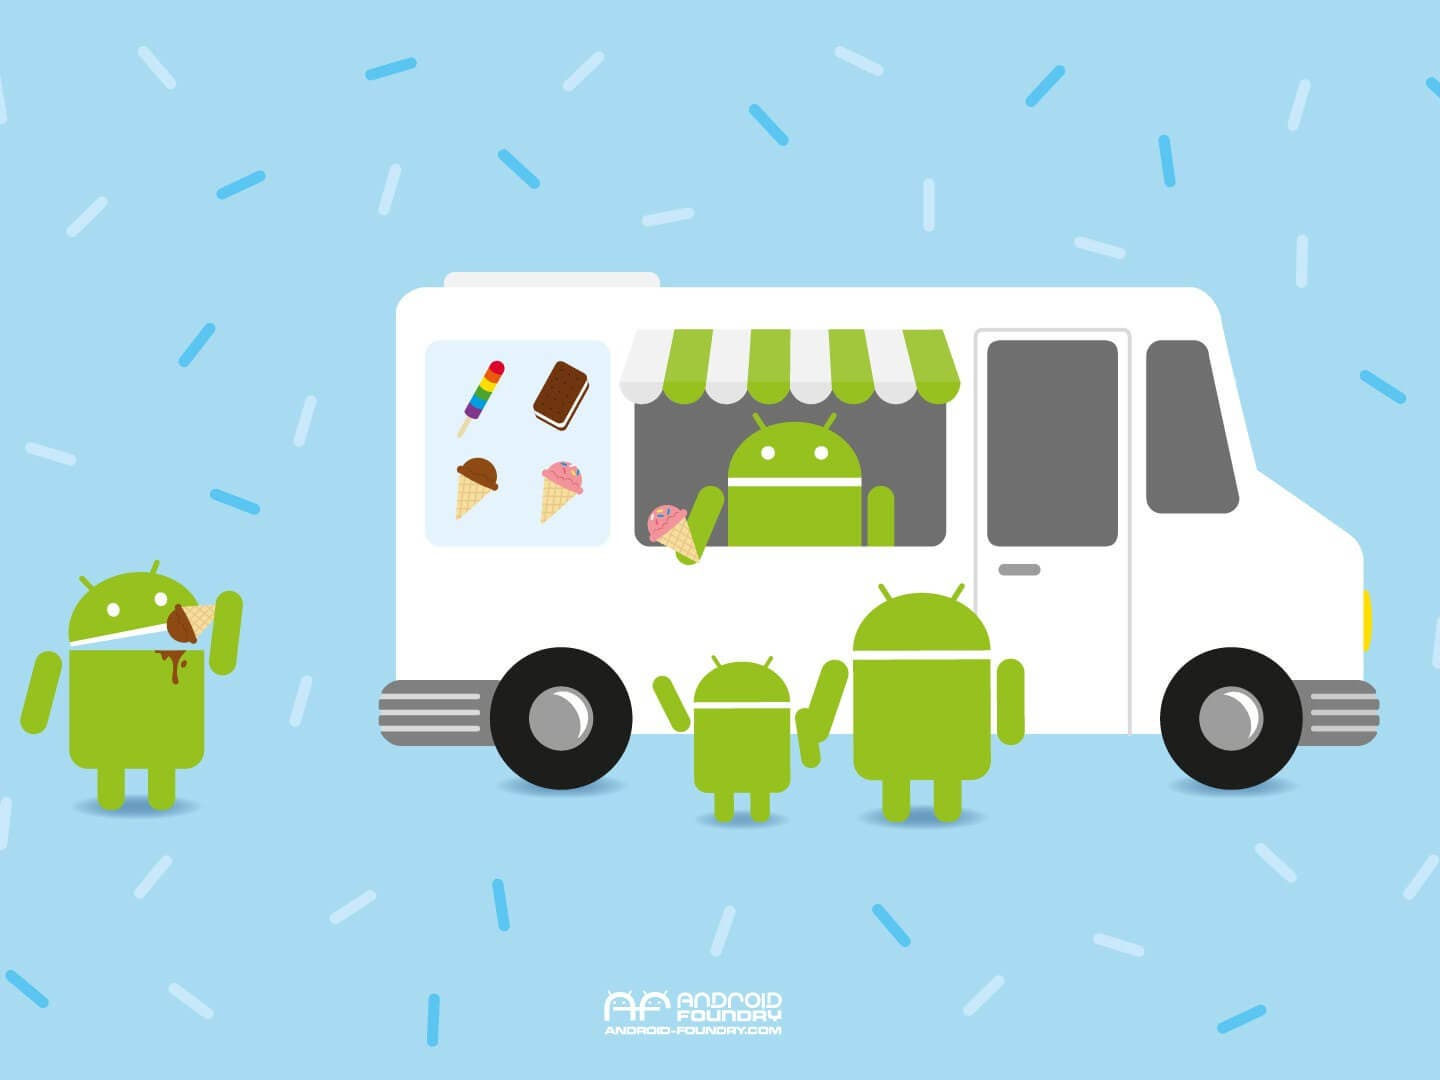 Google dice adiós a Ice Cream Sandwich, ya no tendrá soporte de Google Play Services